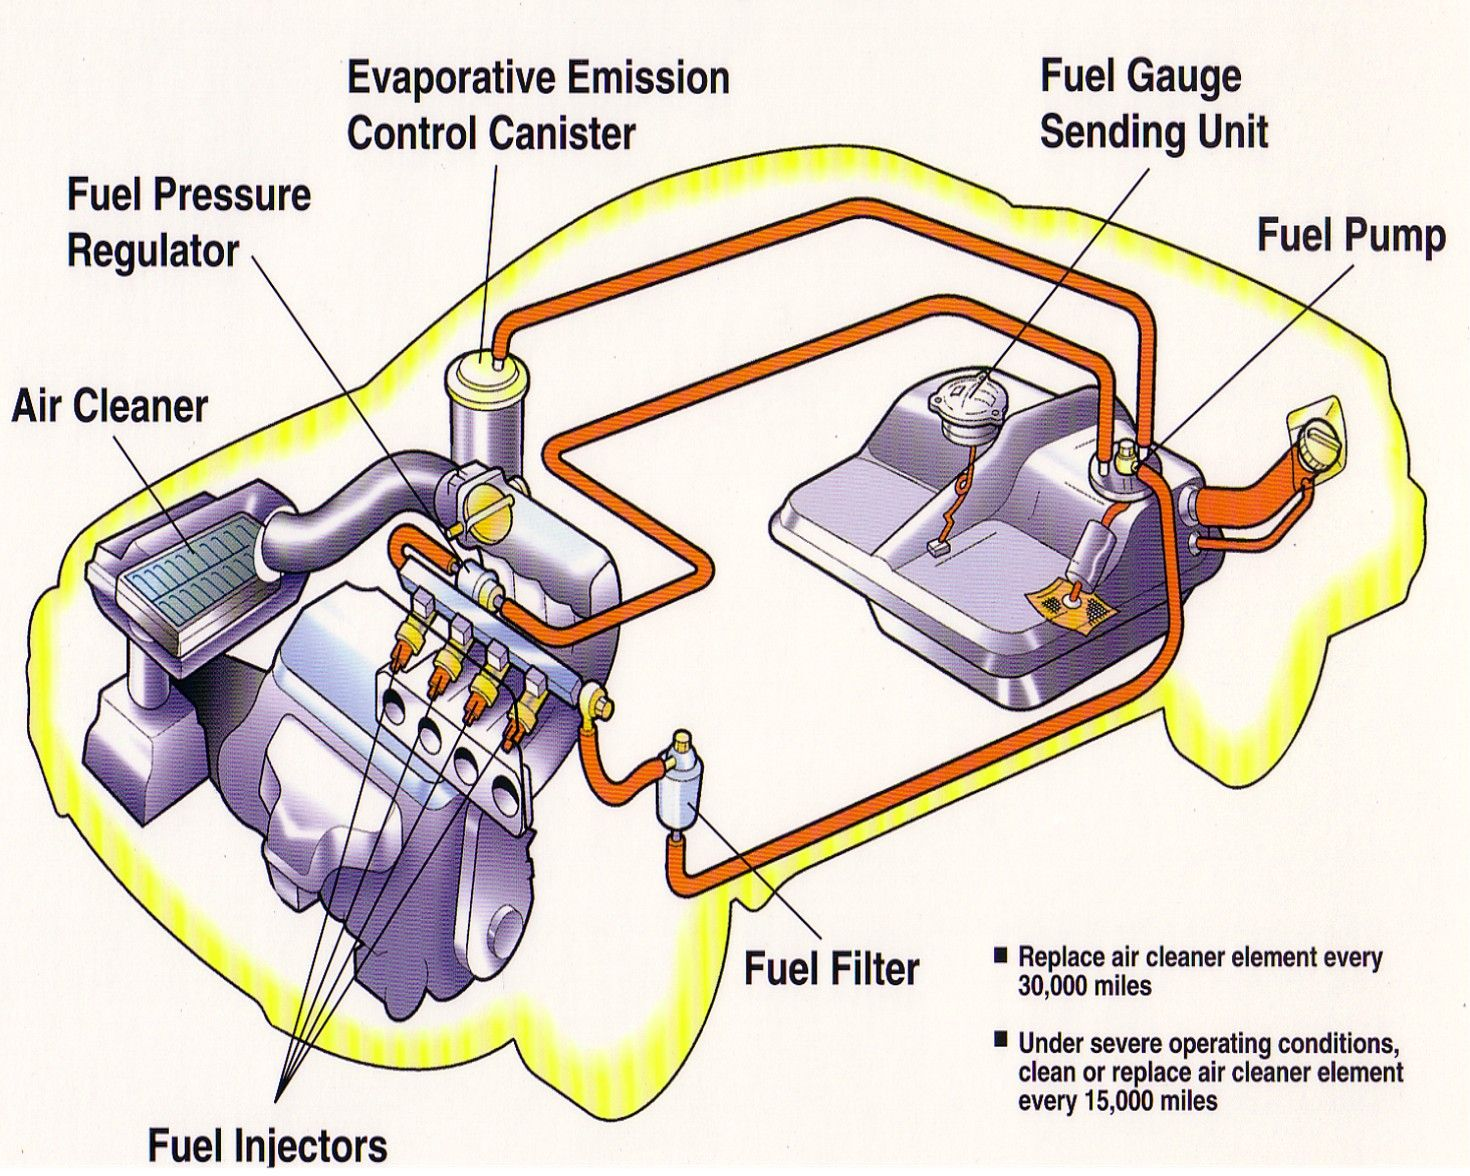 Basic Car Parts Diagram | FuelInject.jpg (433288 bytes) | Projects ...